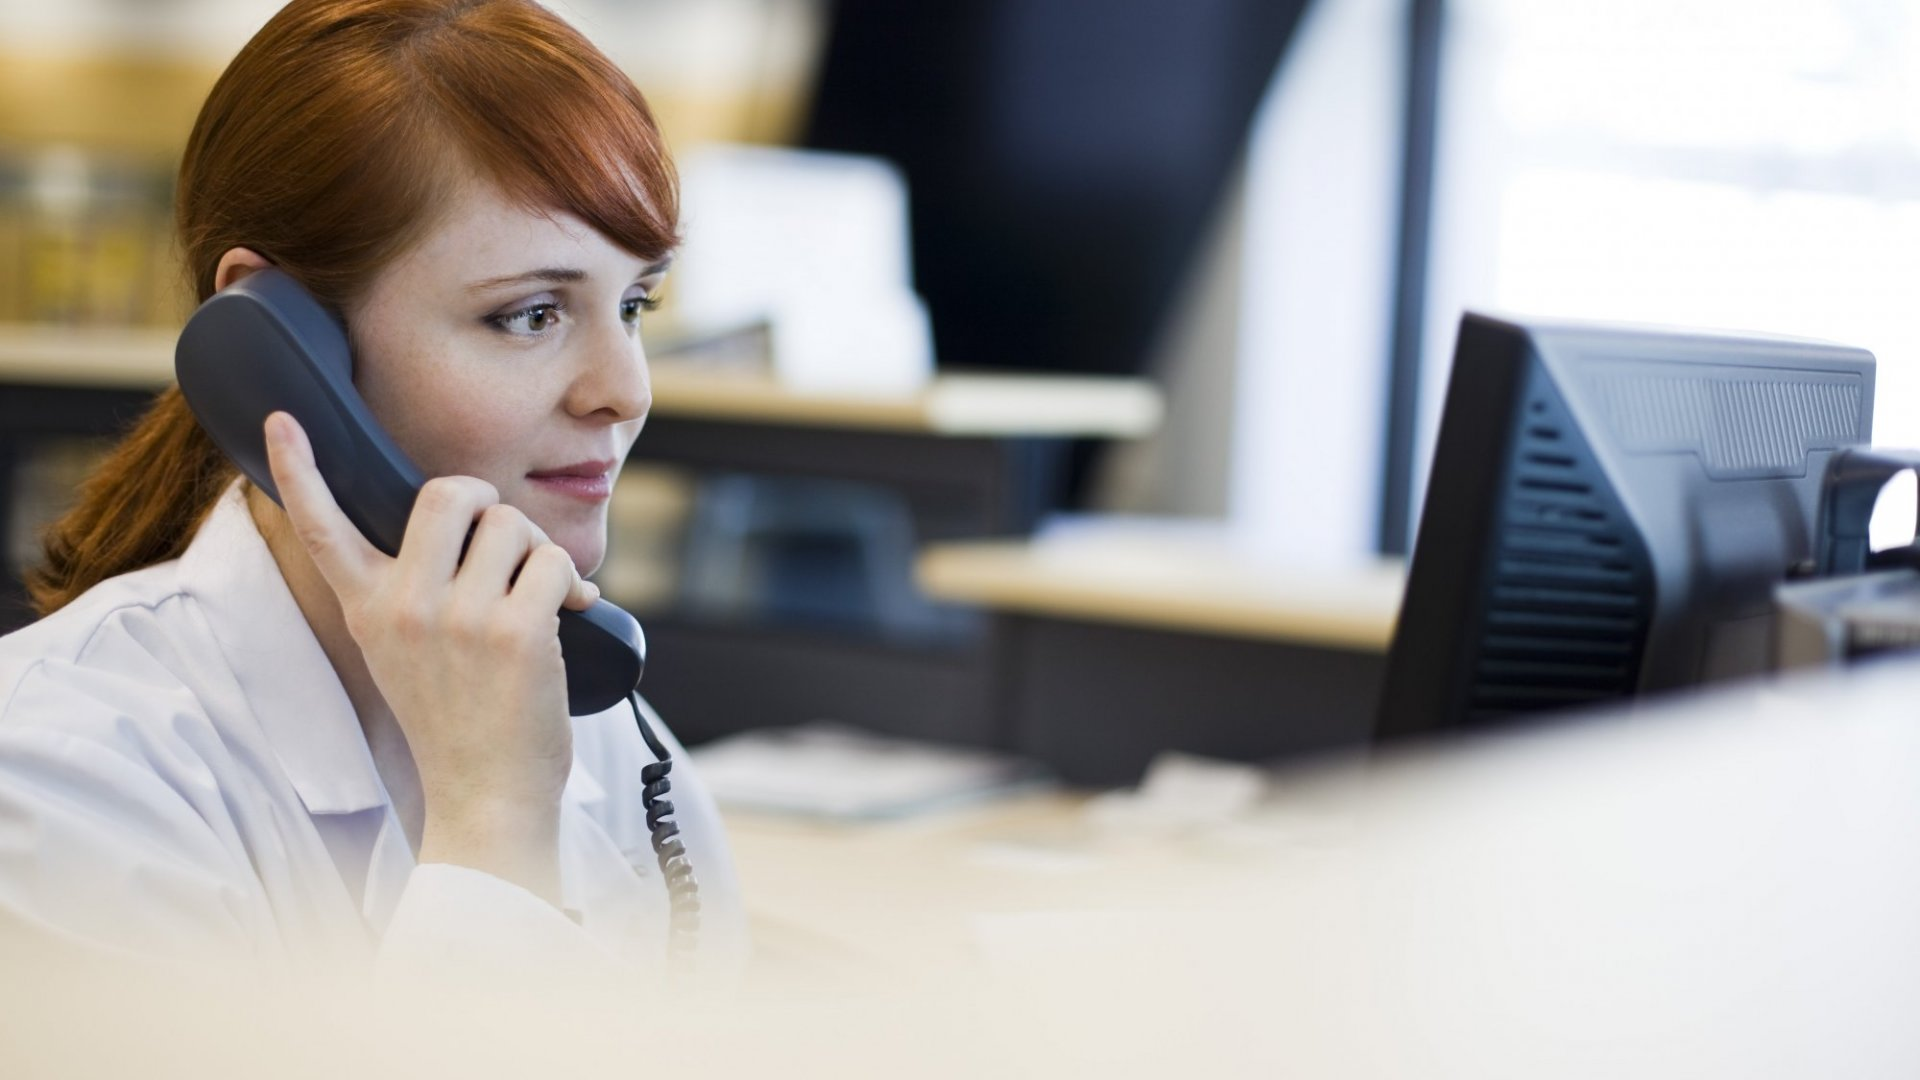 10 Questions You Must Ask Before Hiring Your Next Virtual Assistant